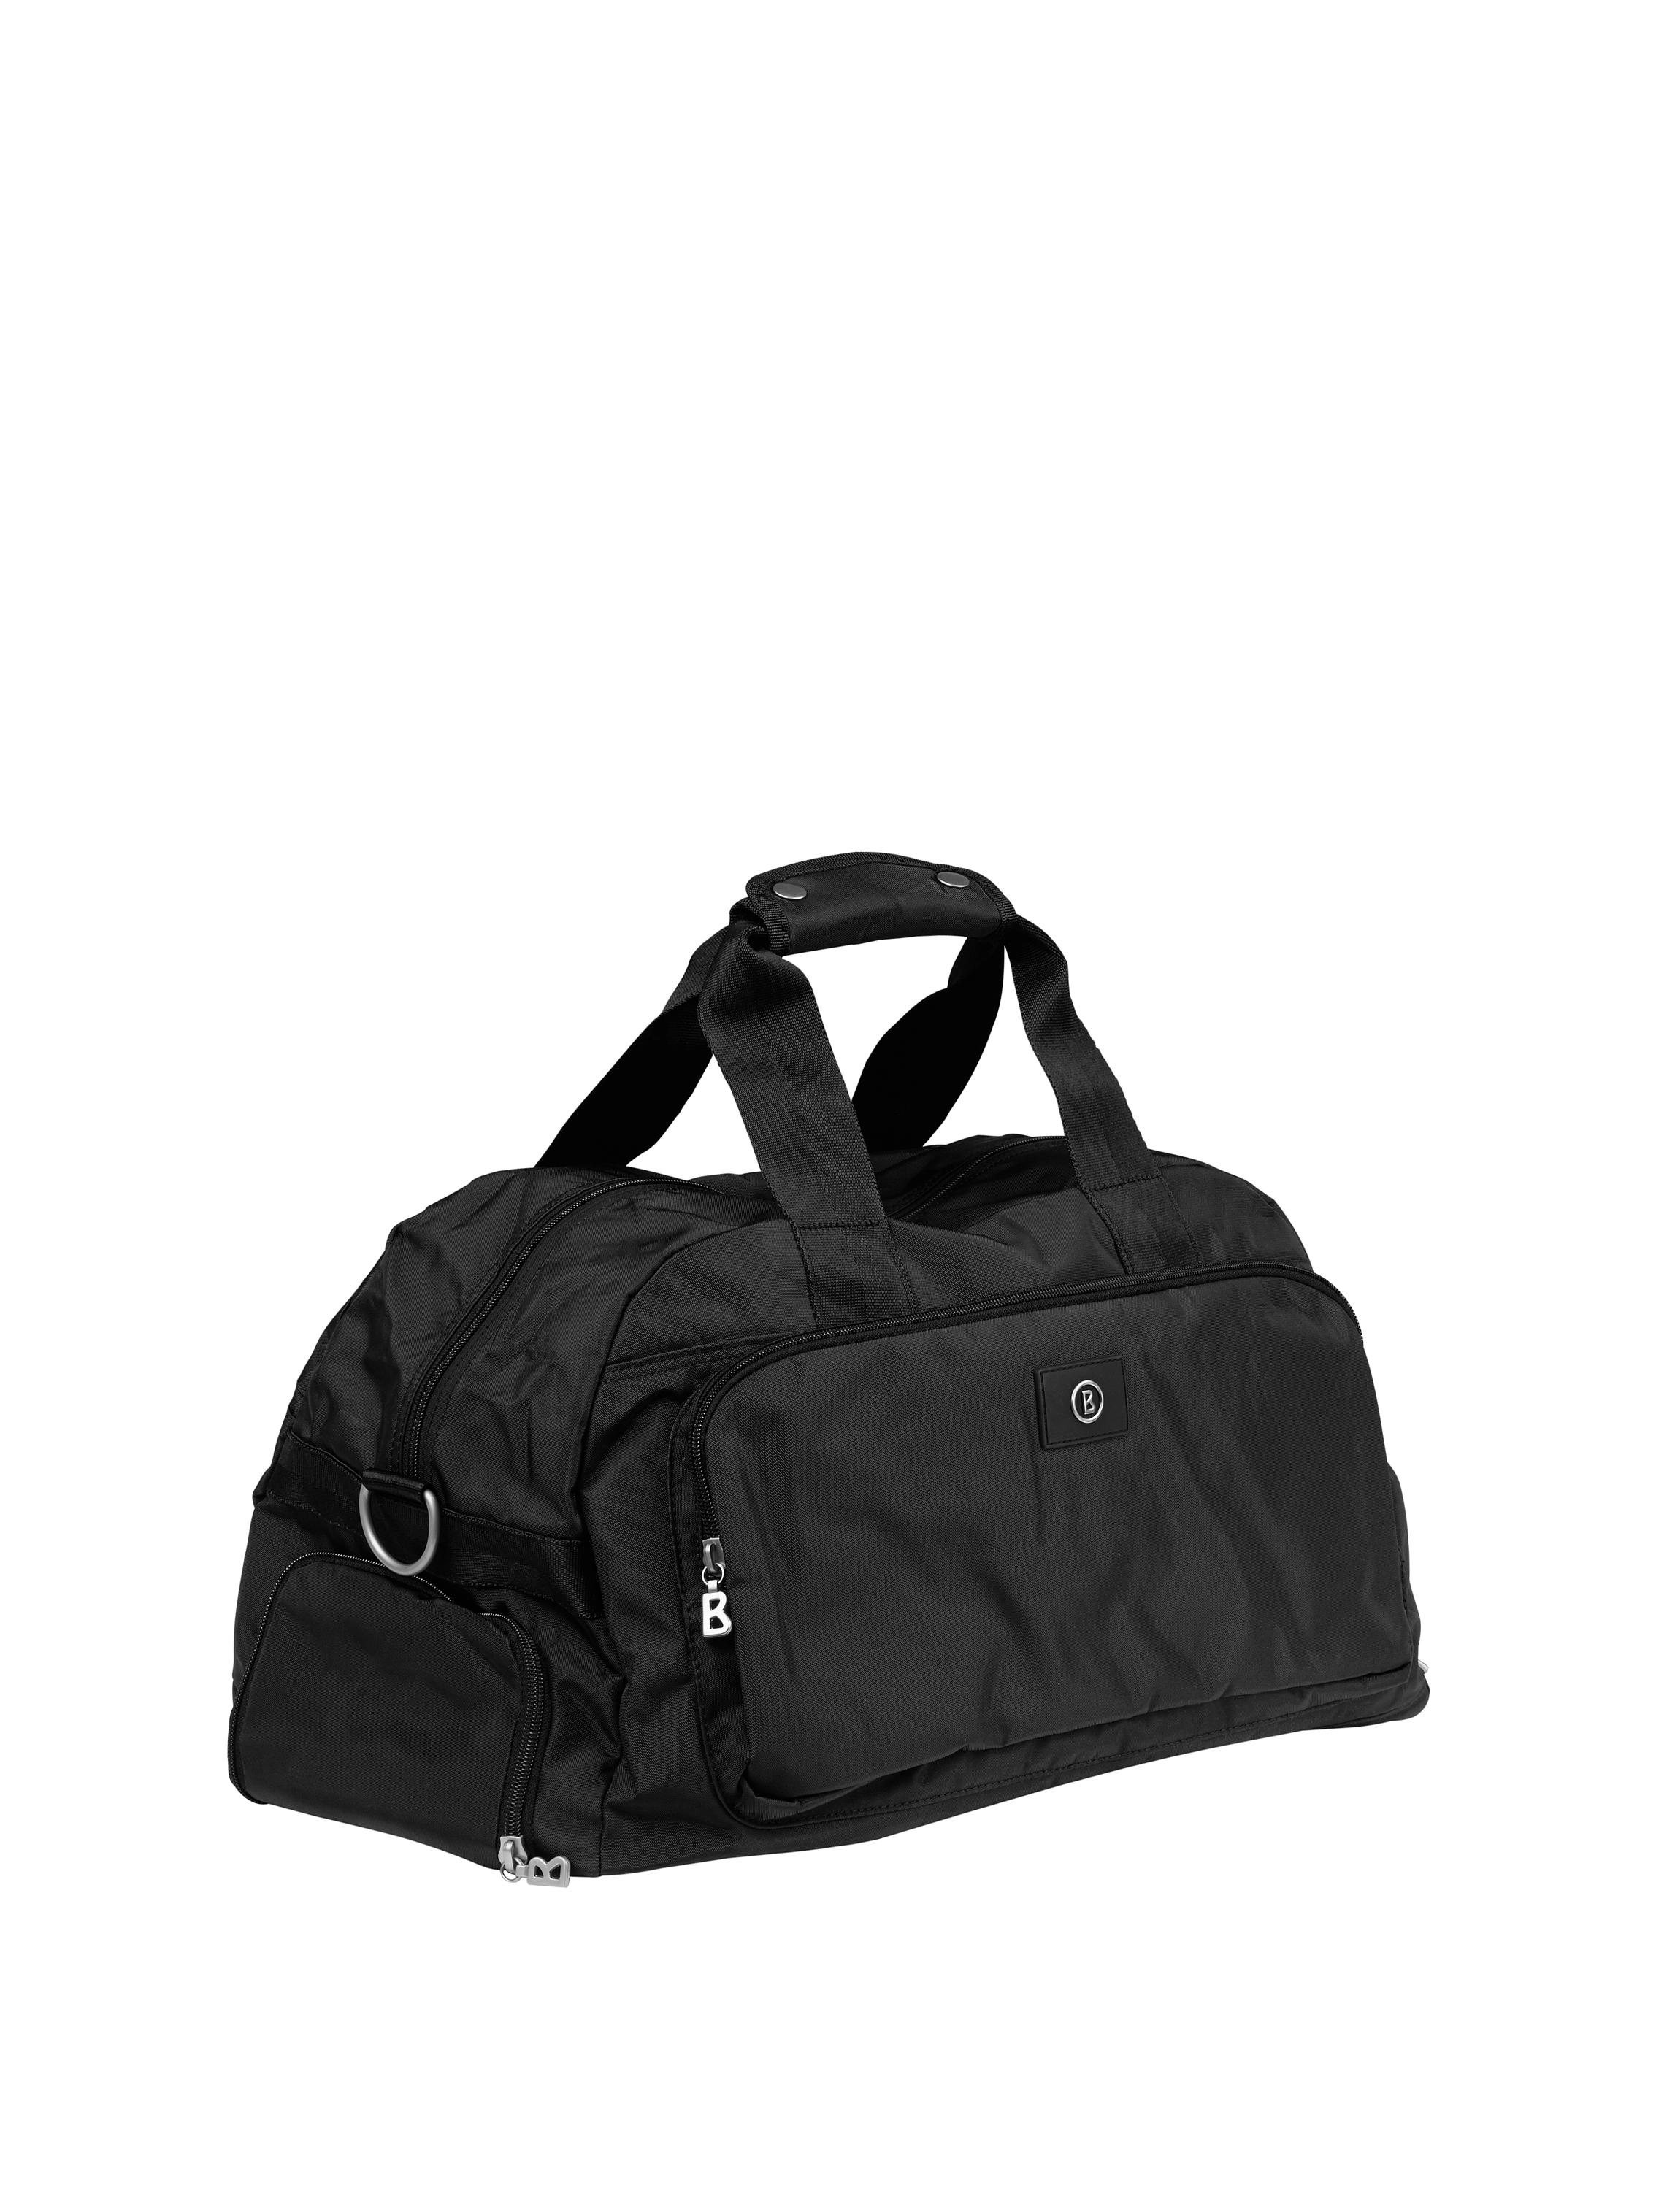 652488e589 Lyst - Bogner Gym Bag Spirit New Fitness in Black for Men